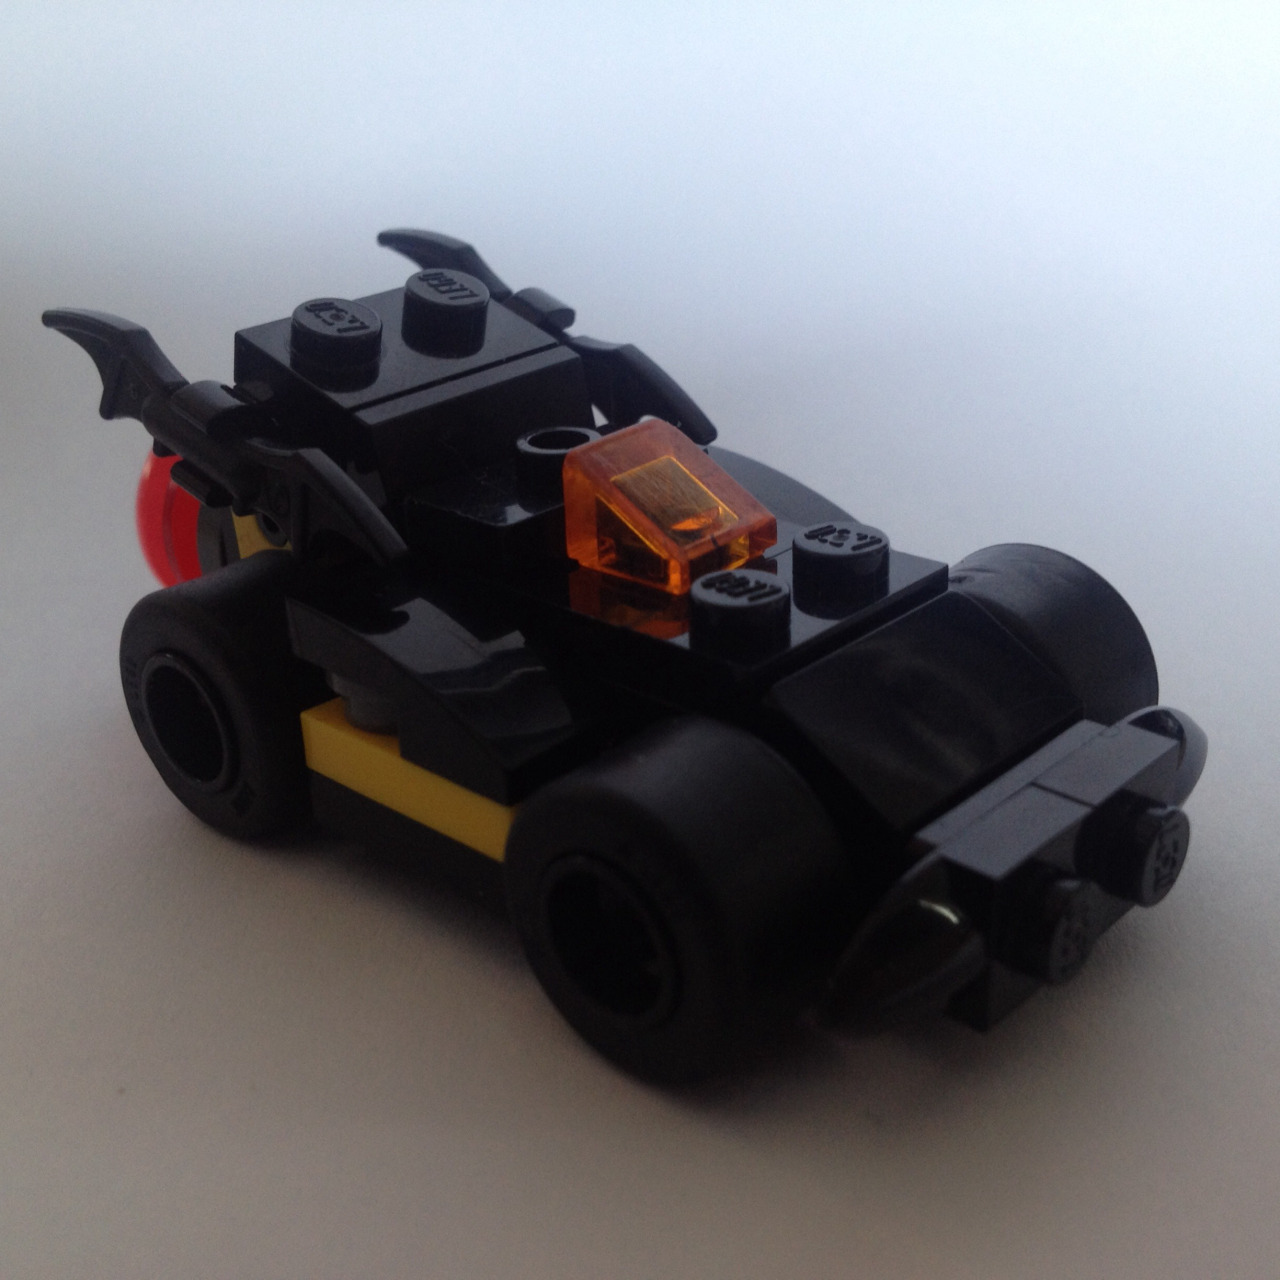 dimensions_batmobile.jpg